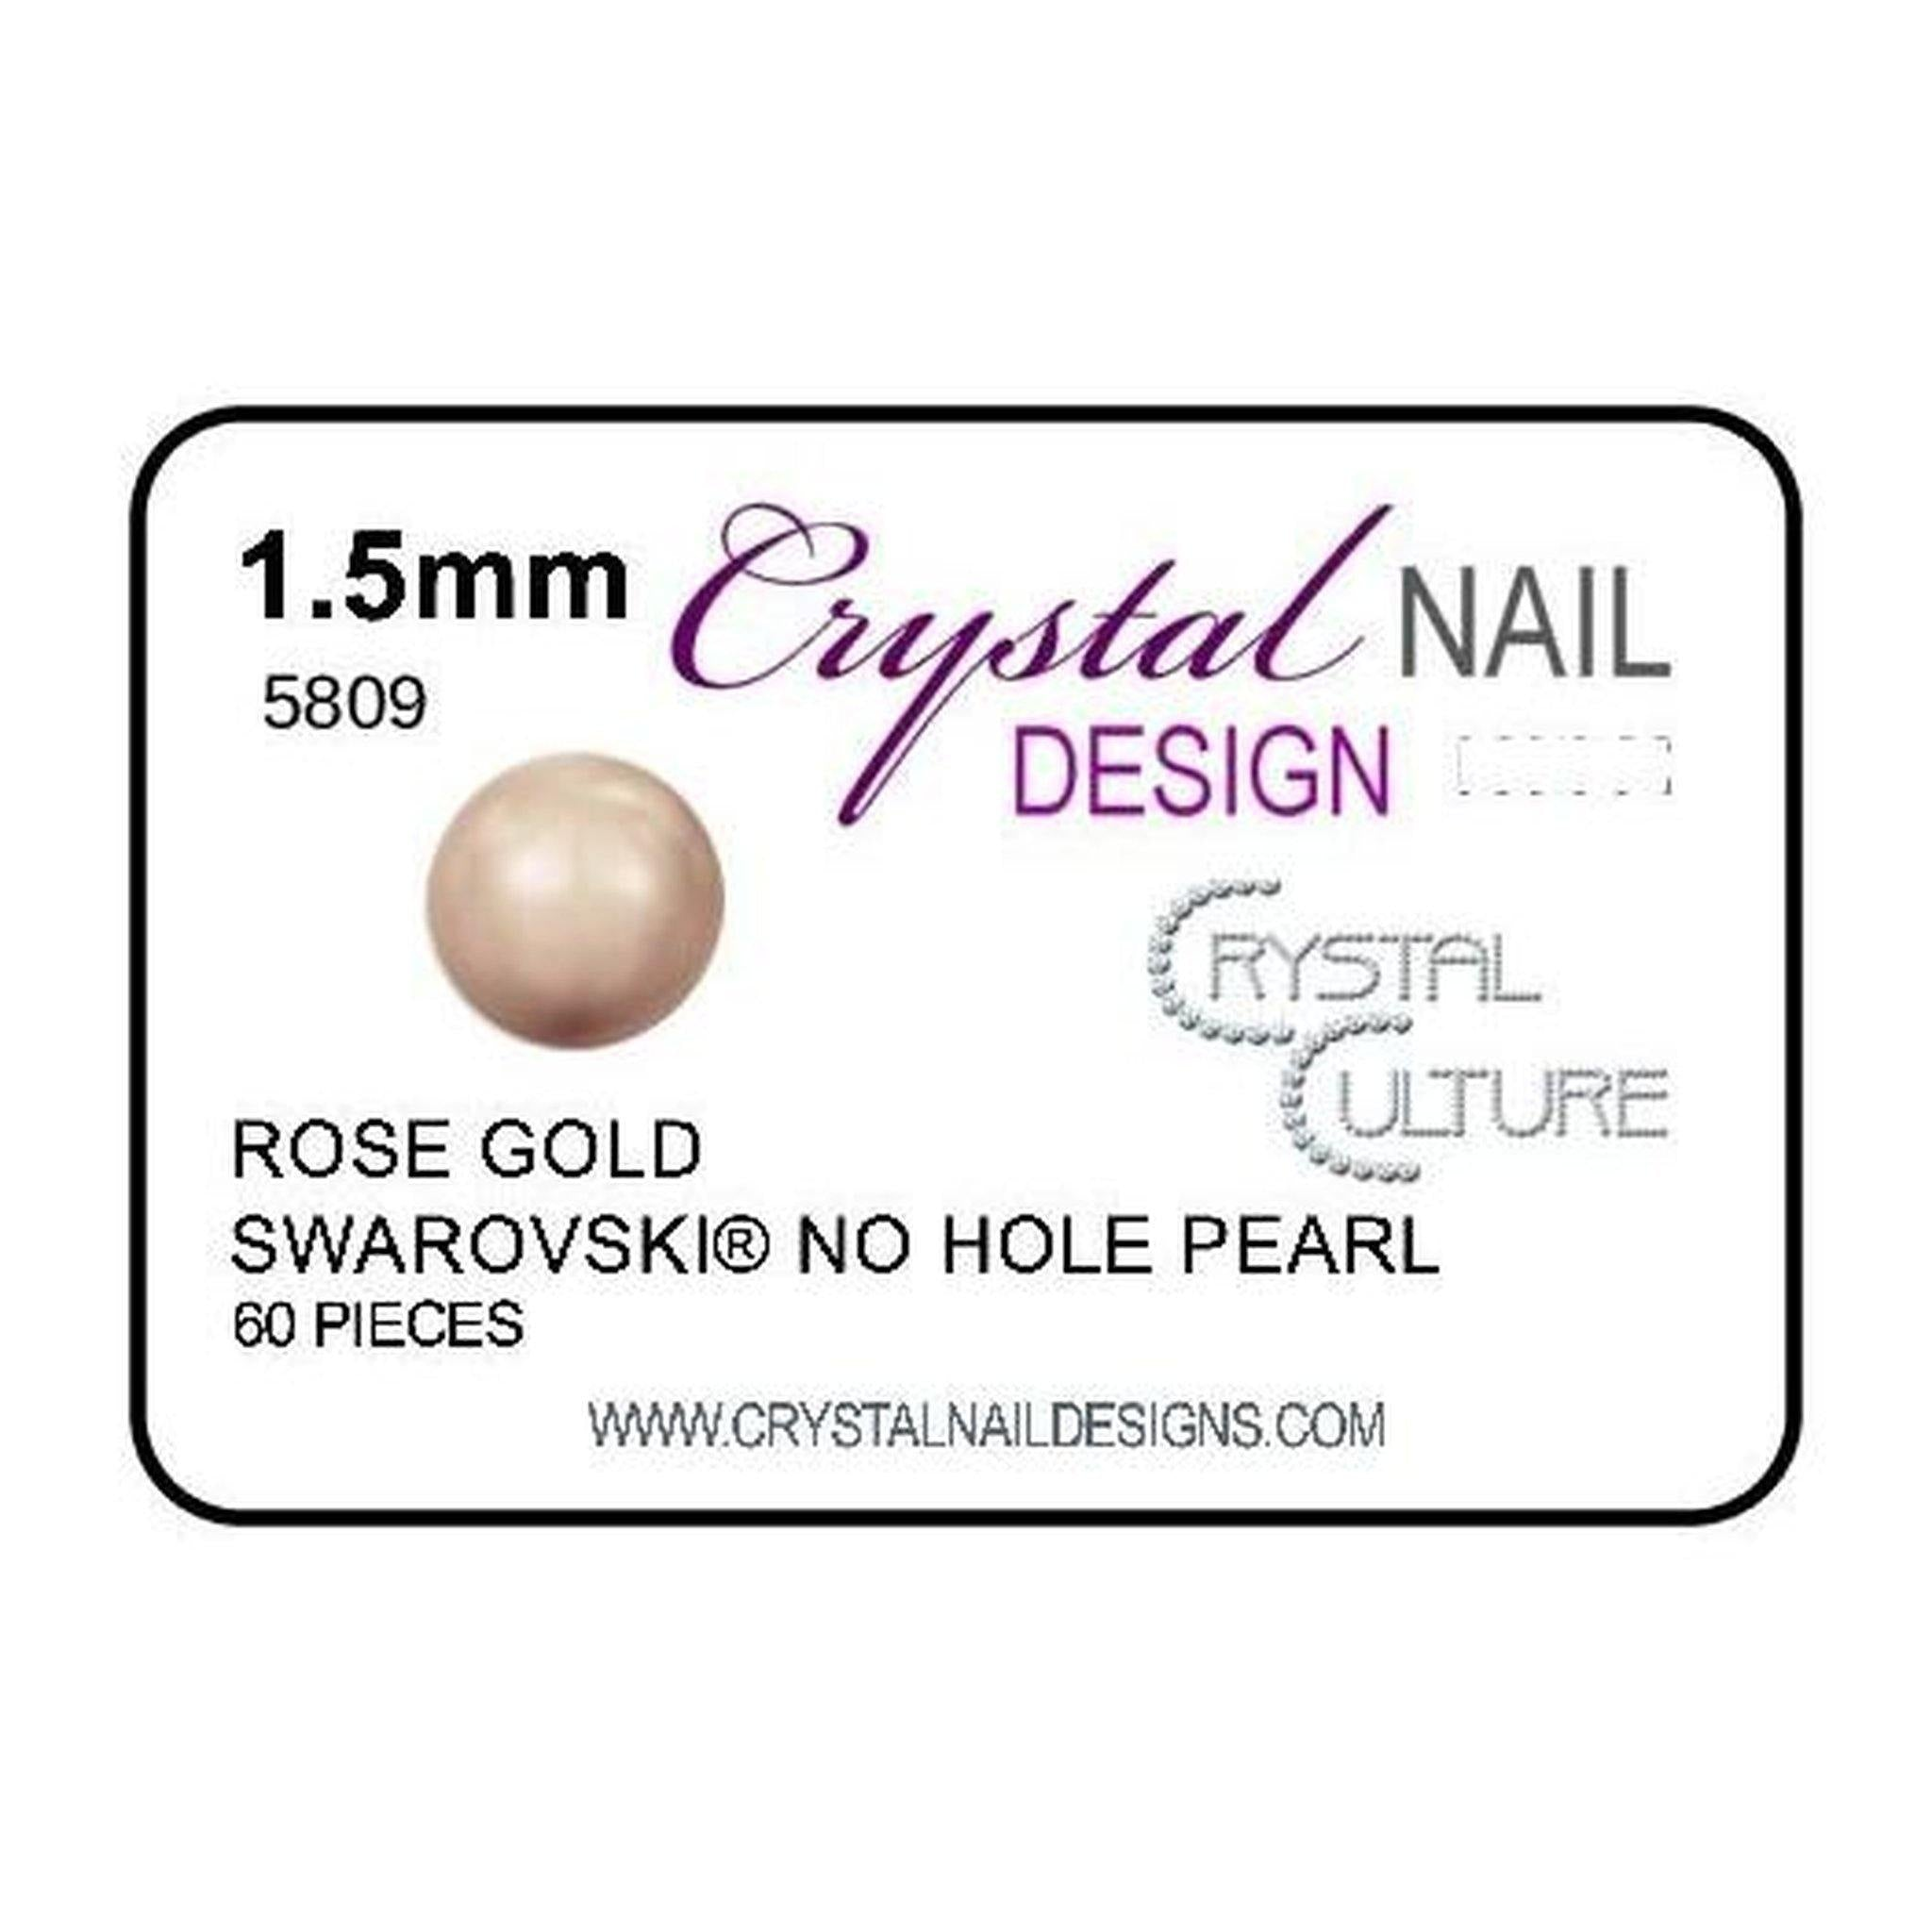 1.5mm Swarovski No Hole Pearl - Rose Gold-Gel Essentialz